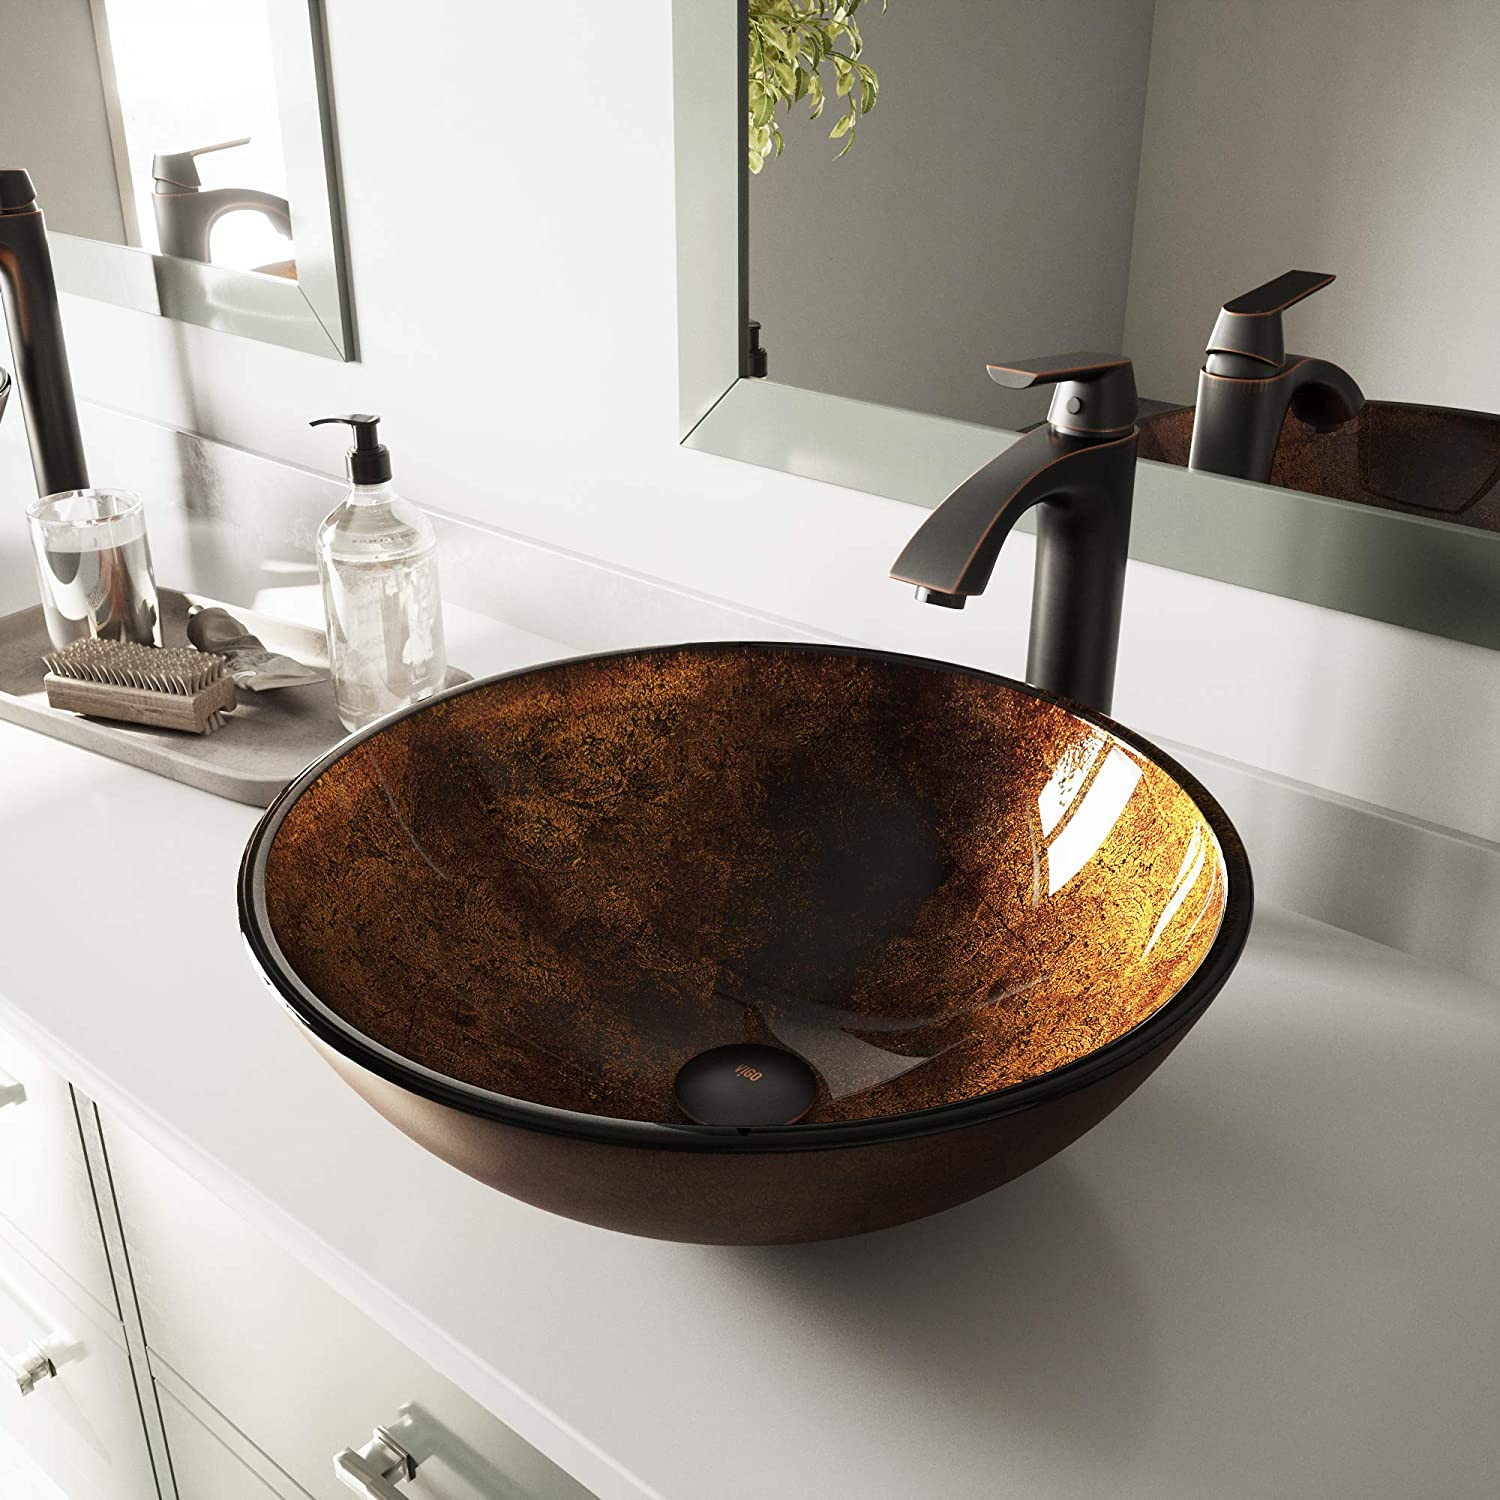 VIGO Russet Glass Vessel Bathroom Sink and Linus Vessel Faucet with Pop Up, Antique Rubbed Bronze